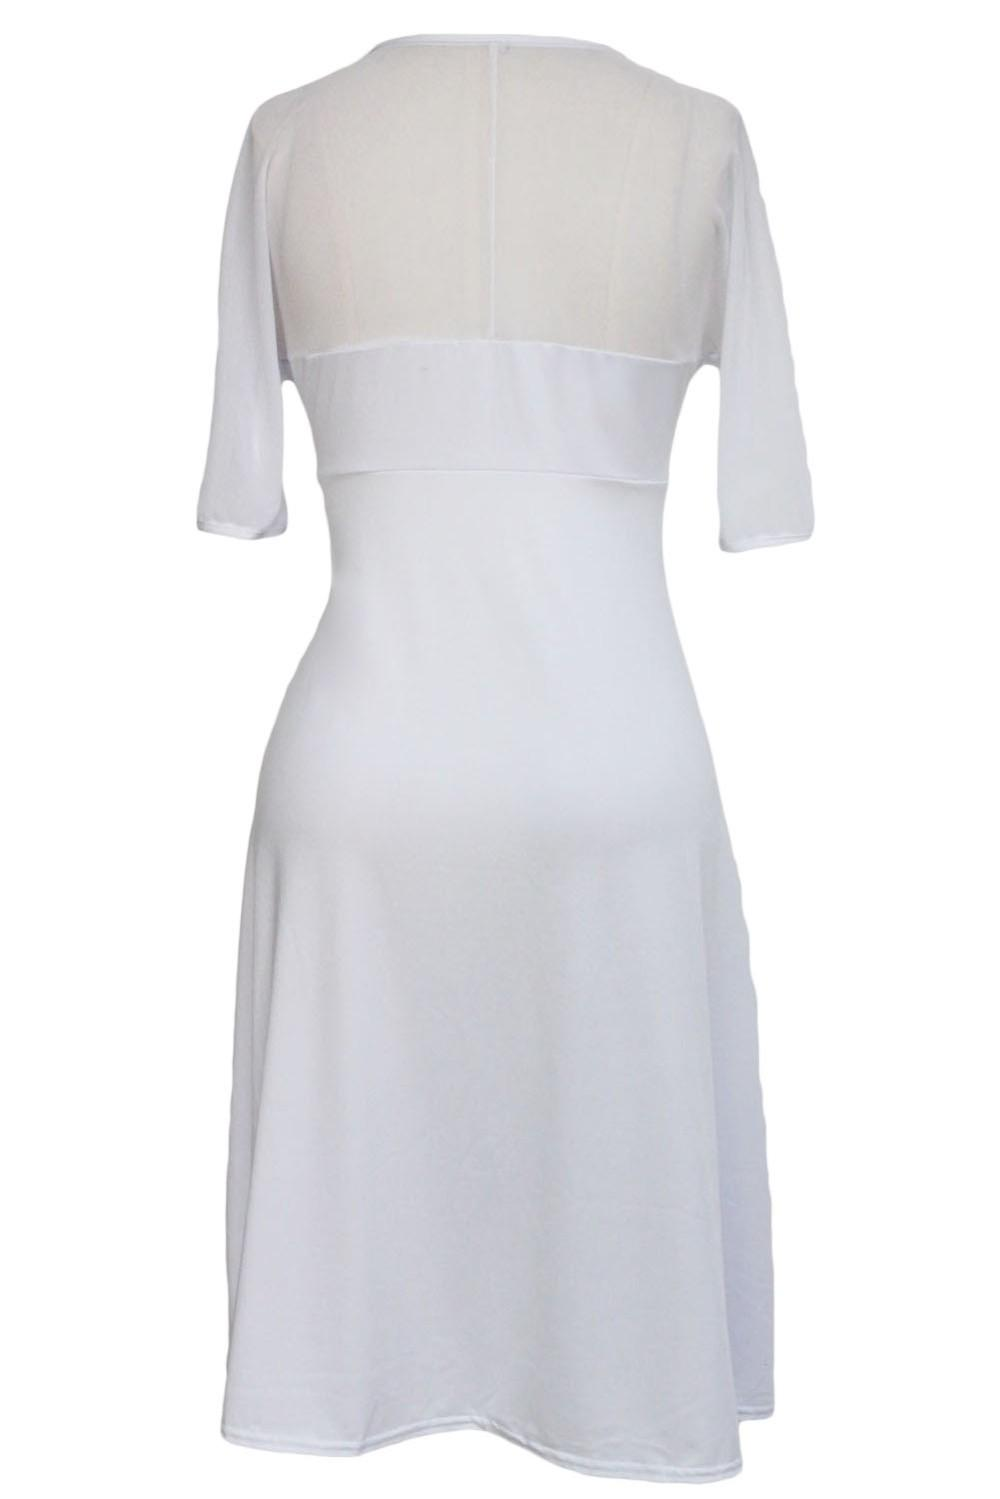 White-Plus-Size-Sugar-and-Spice-Dress-LC60671-2-2